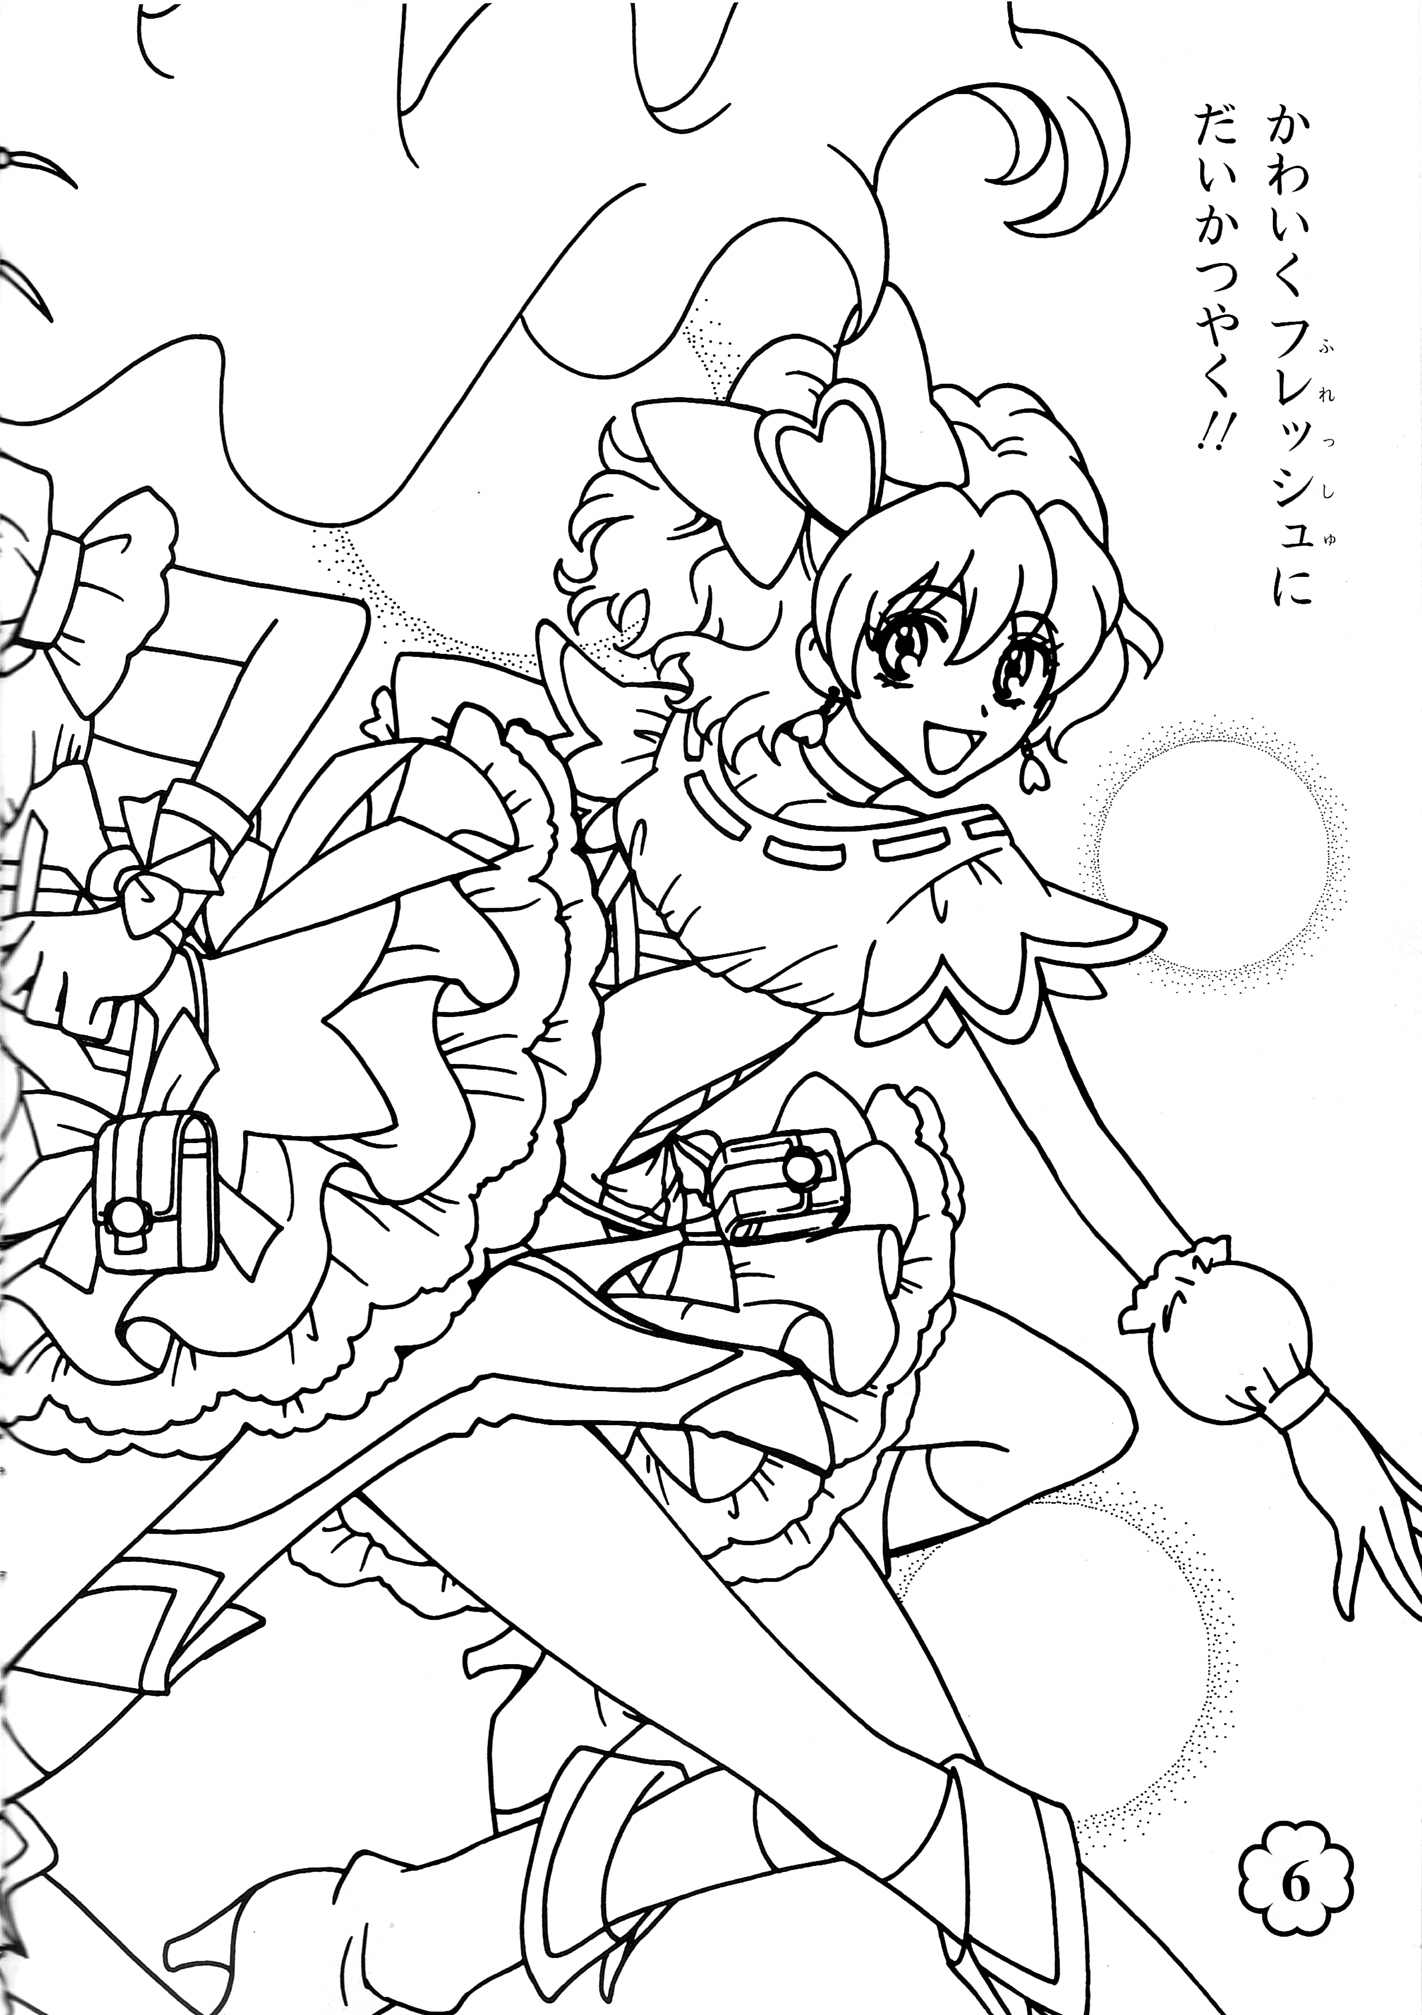 oasidelleanime precure coloring pages - photo #31